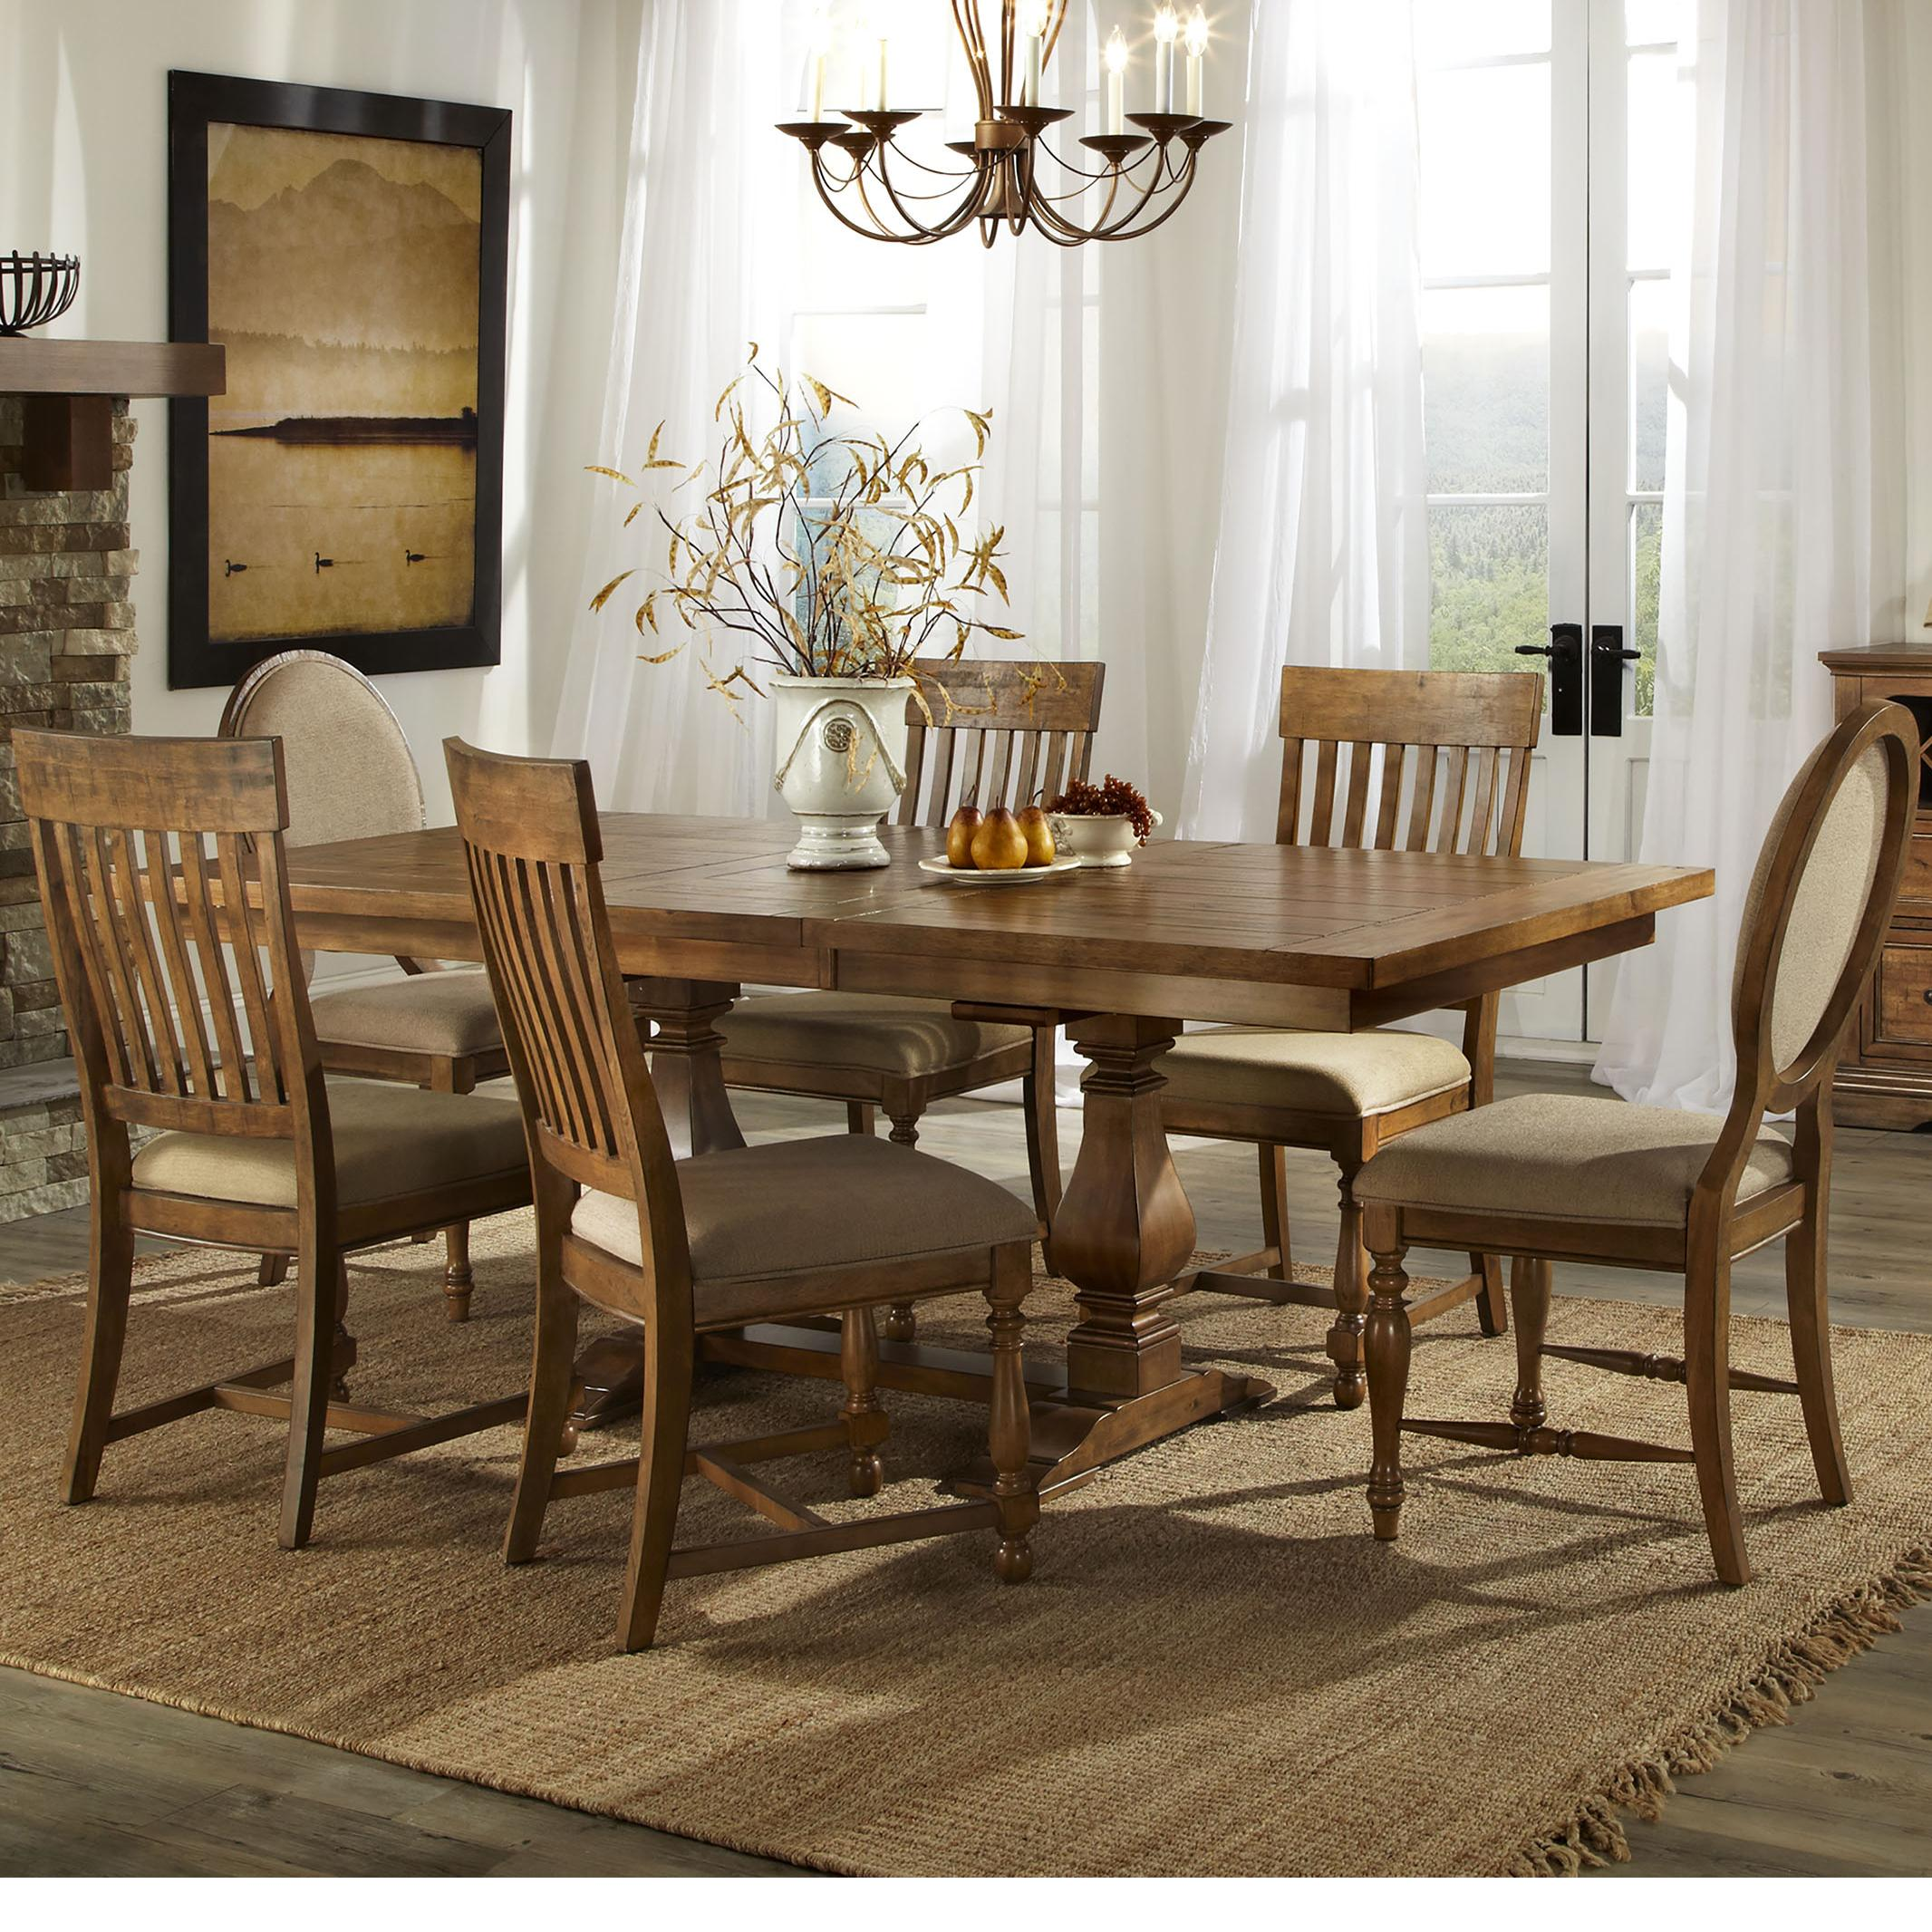 Belfort Select Loudoun Crossing Dining Table and Chair Set - Item Number: R-T-4-B-B+B-T+4xR-C-C-B-R+2x0C-B-R